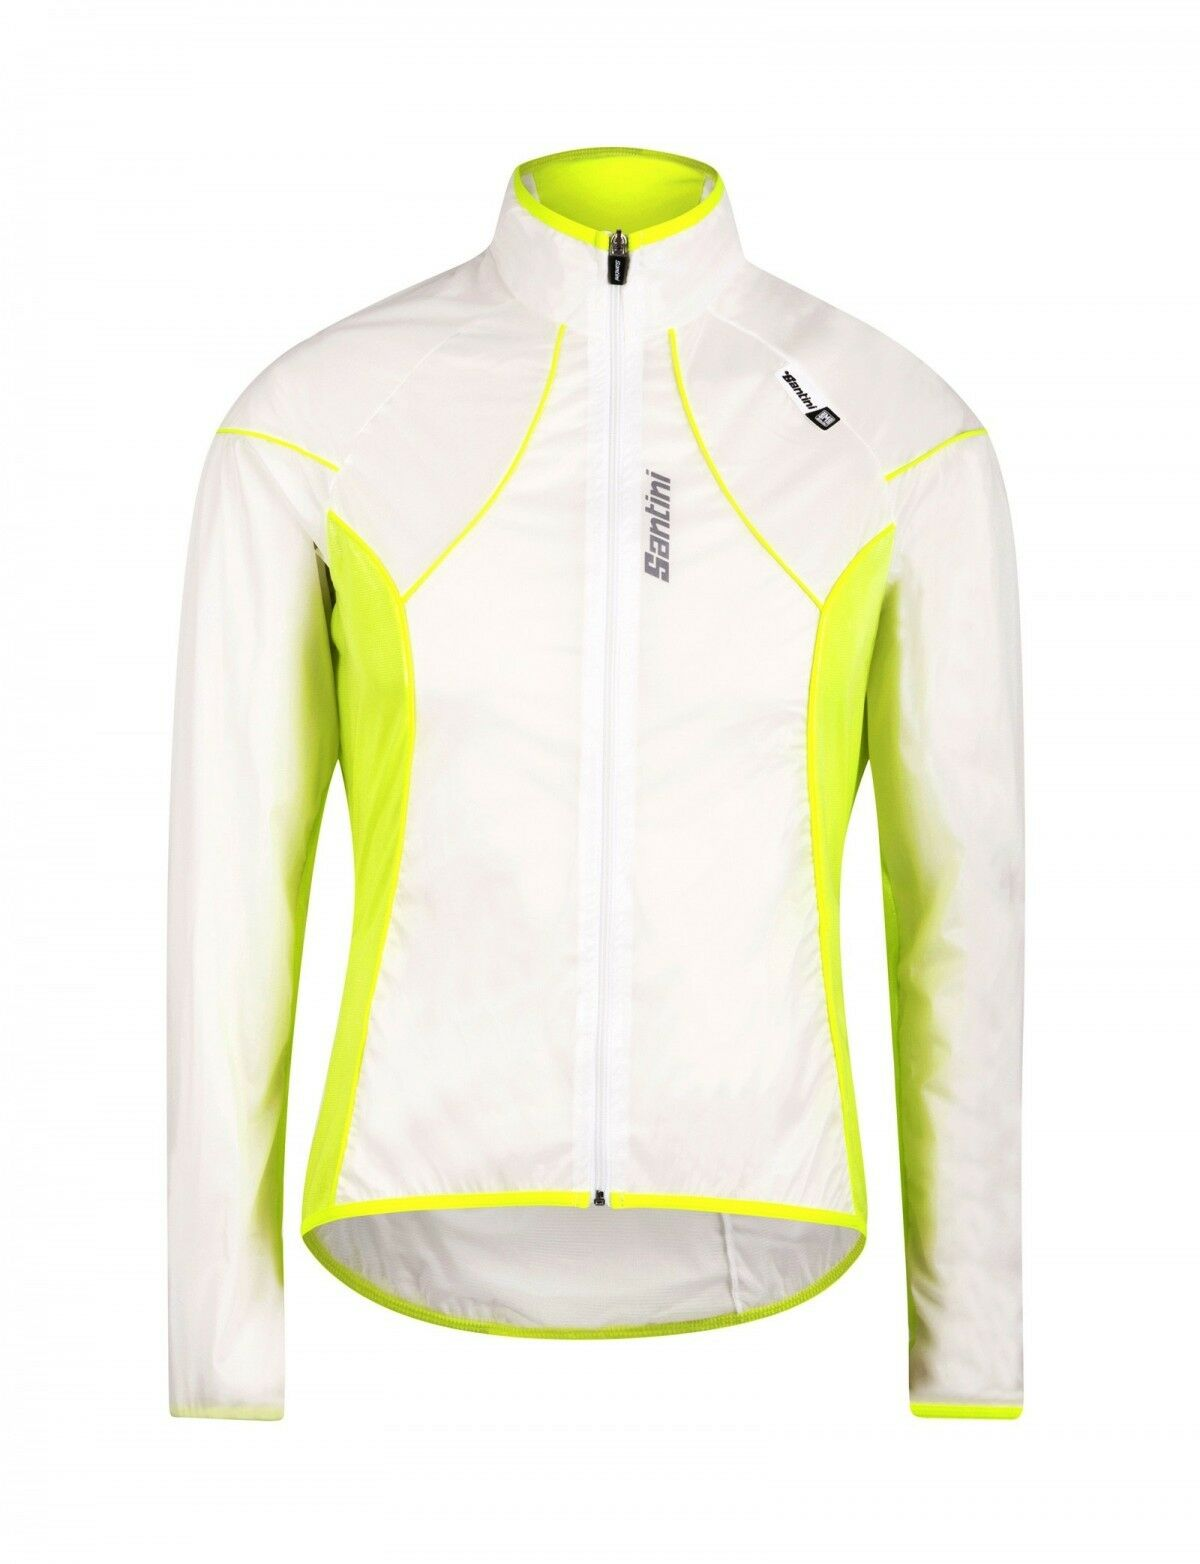 CAPE SANTINI ICE 2 FLUORESCENT YELLOW SIZE 4XL